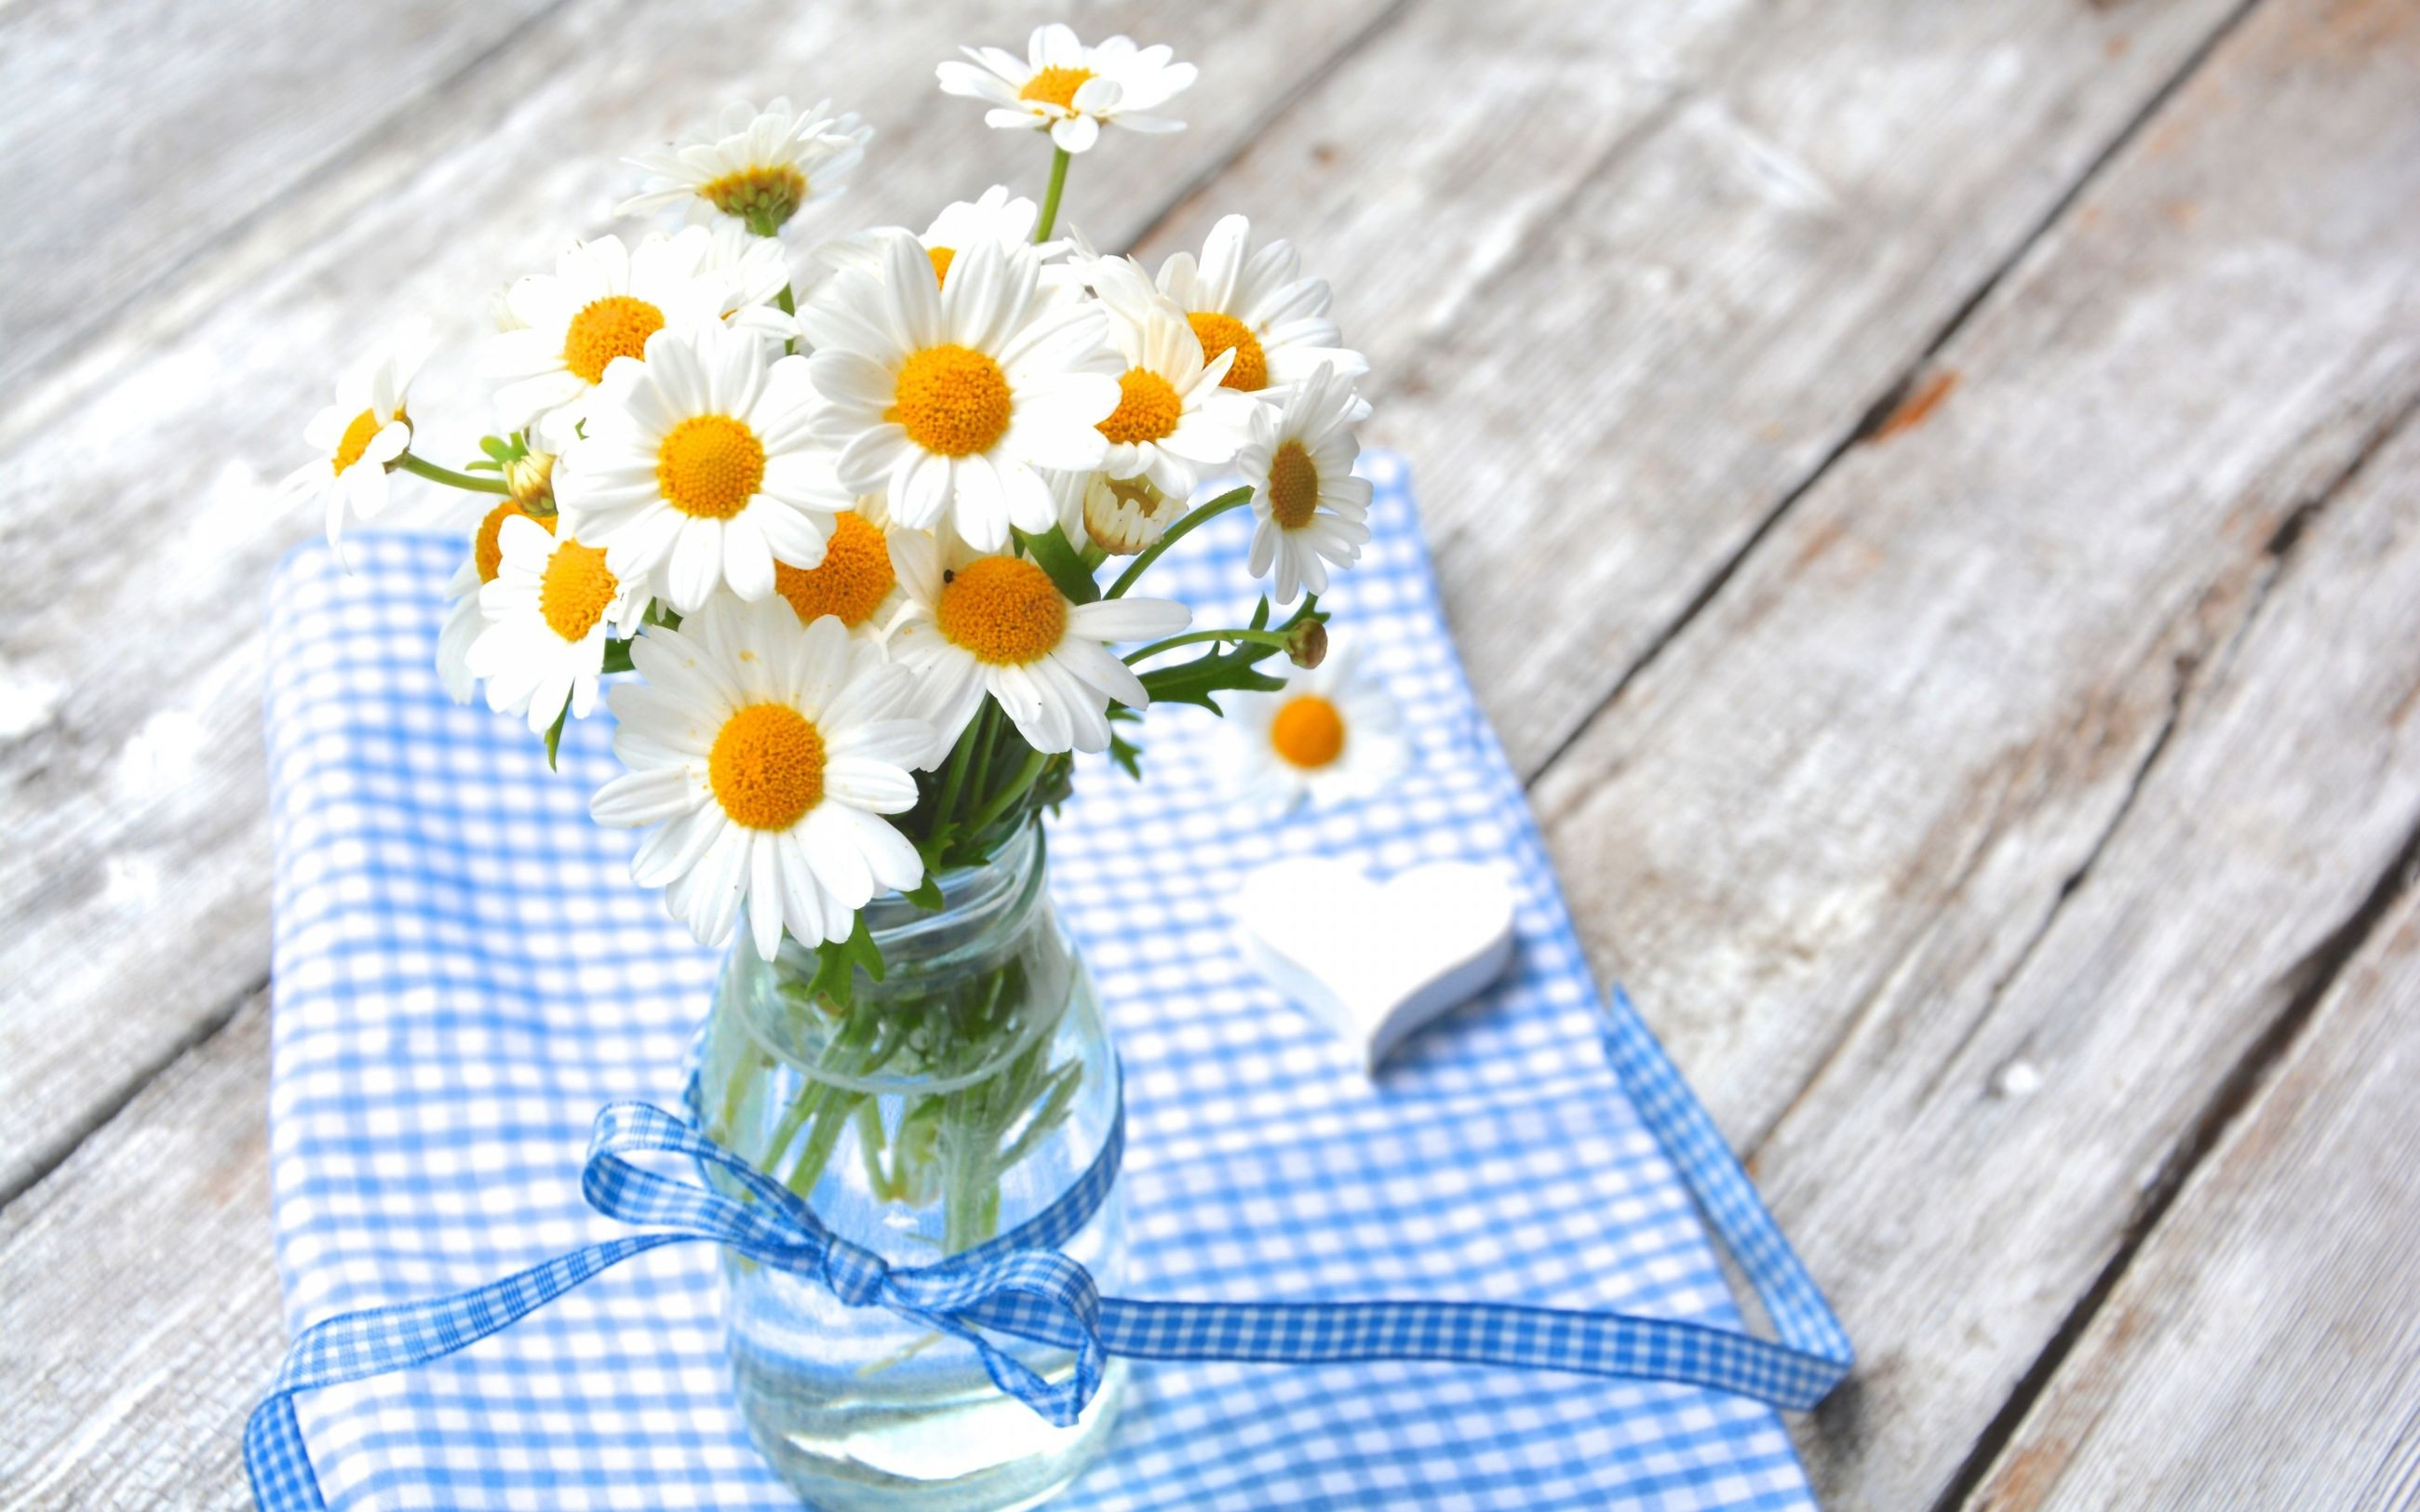 flower, wood - material, freshness, table, high angle view, no people, flower head, vase, close-up, fragility, jar, day, nature, outdoors